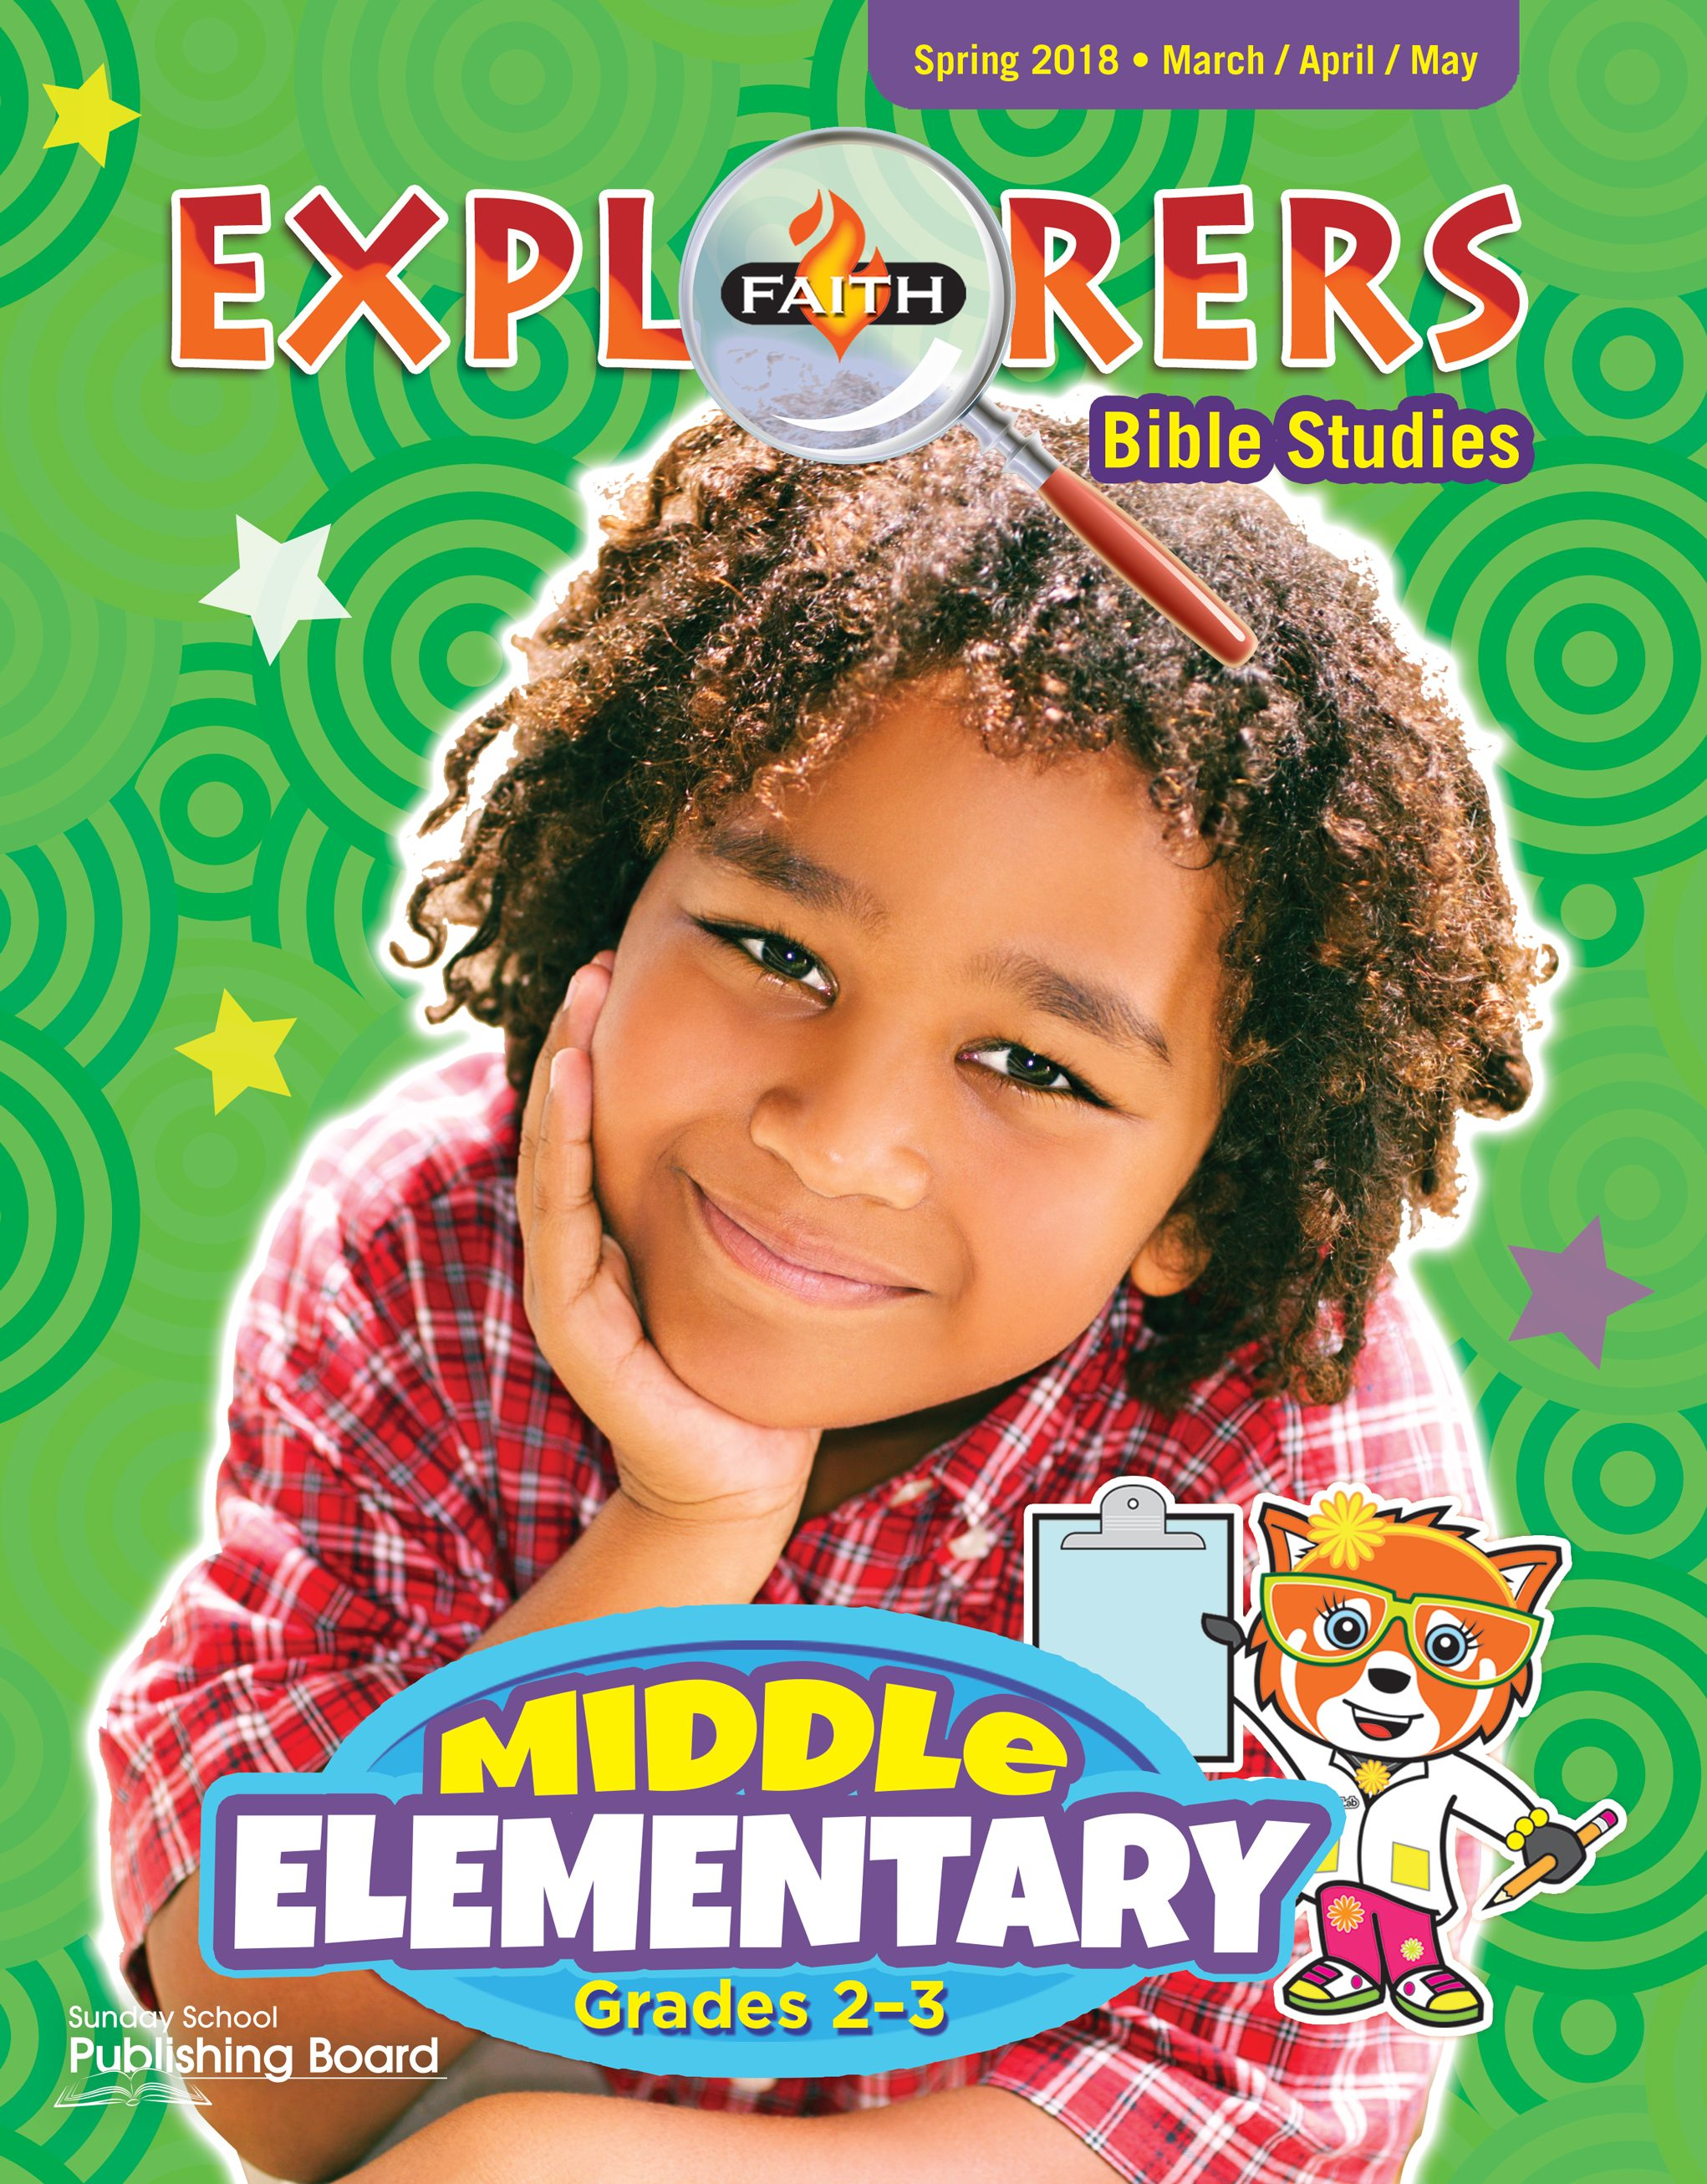 Faith Explorers Bible Studies, Middle Elementary for Grades 2-3 (Spring 2018)-Digital Edition